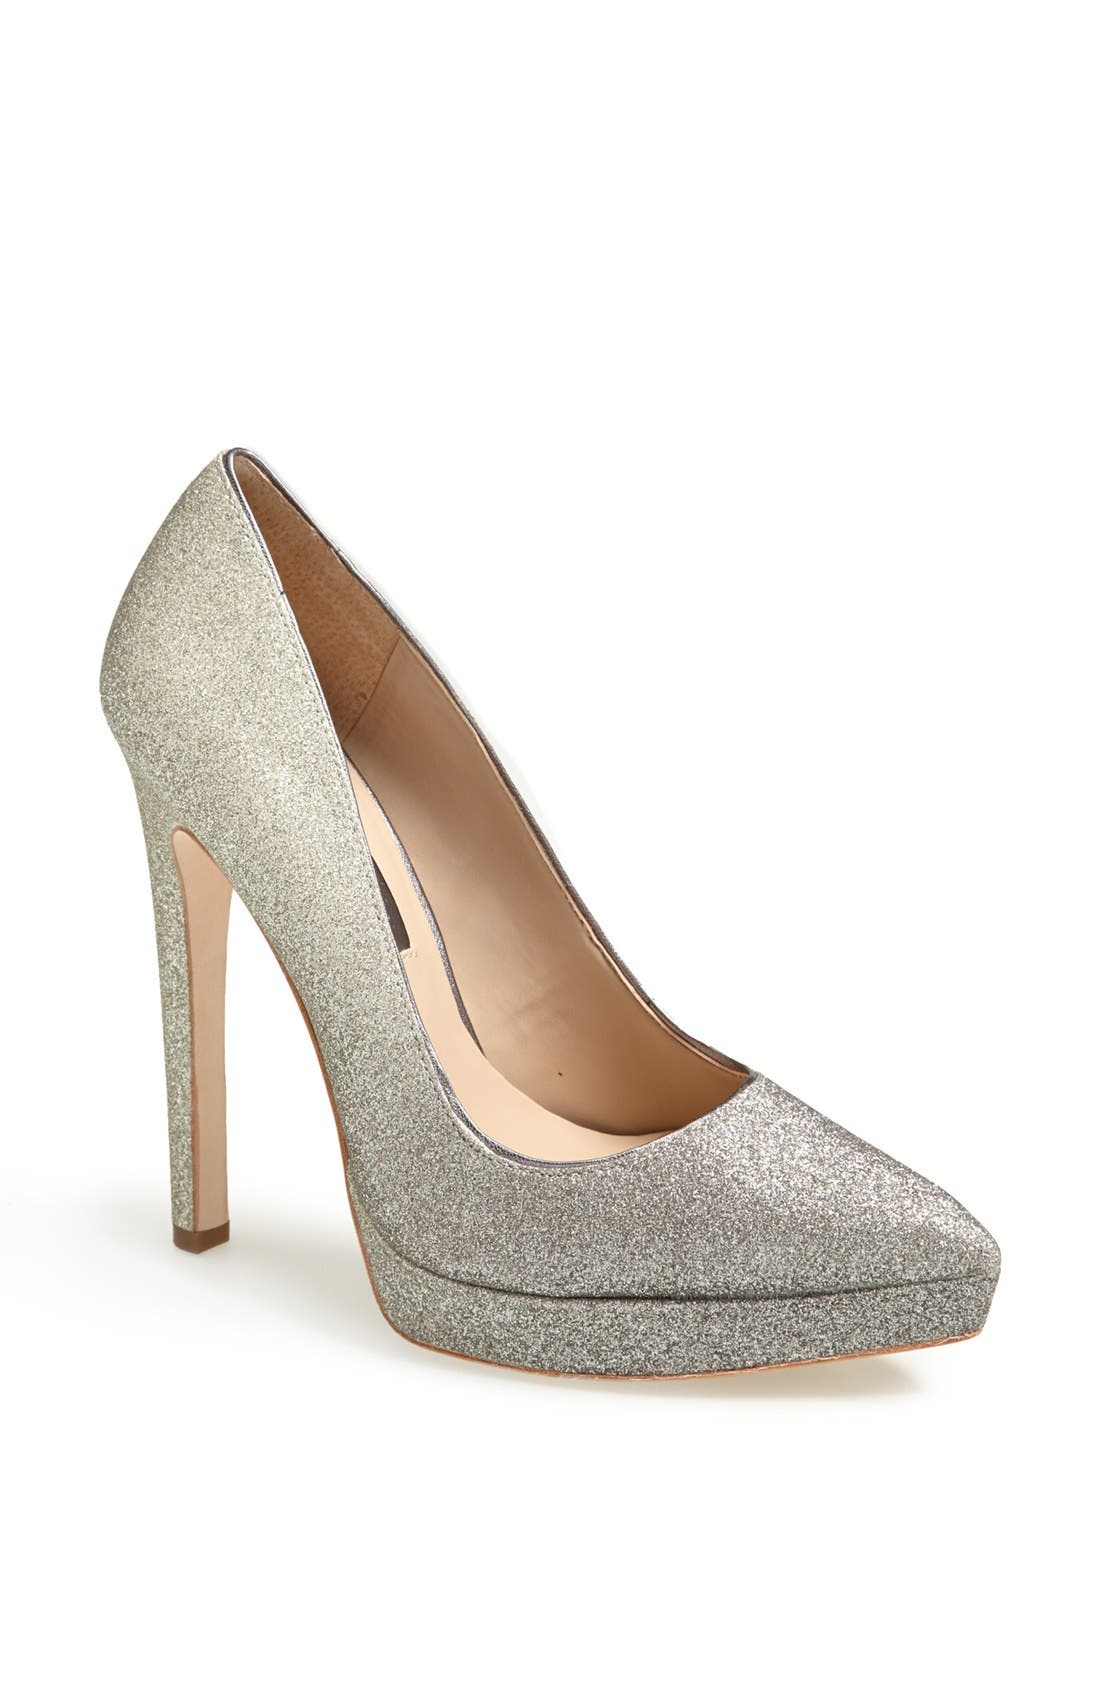 Alternate Image 1 Selected - BCBGMAXAZRIA 'Gami' Dégradé Glitter Pointy Toe Pump